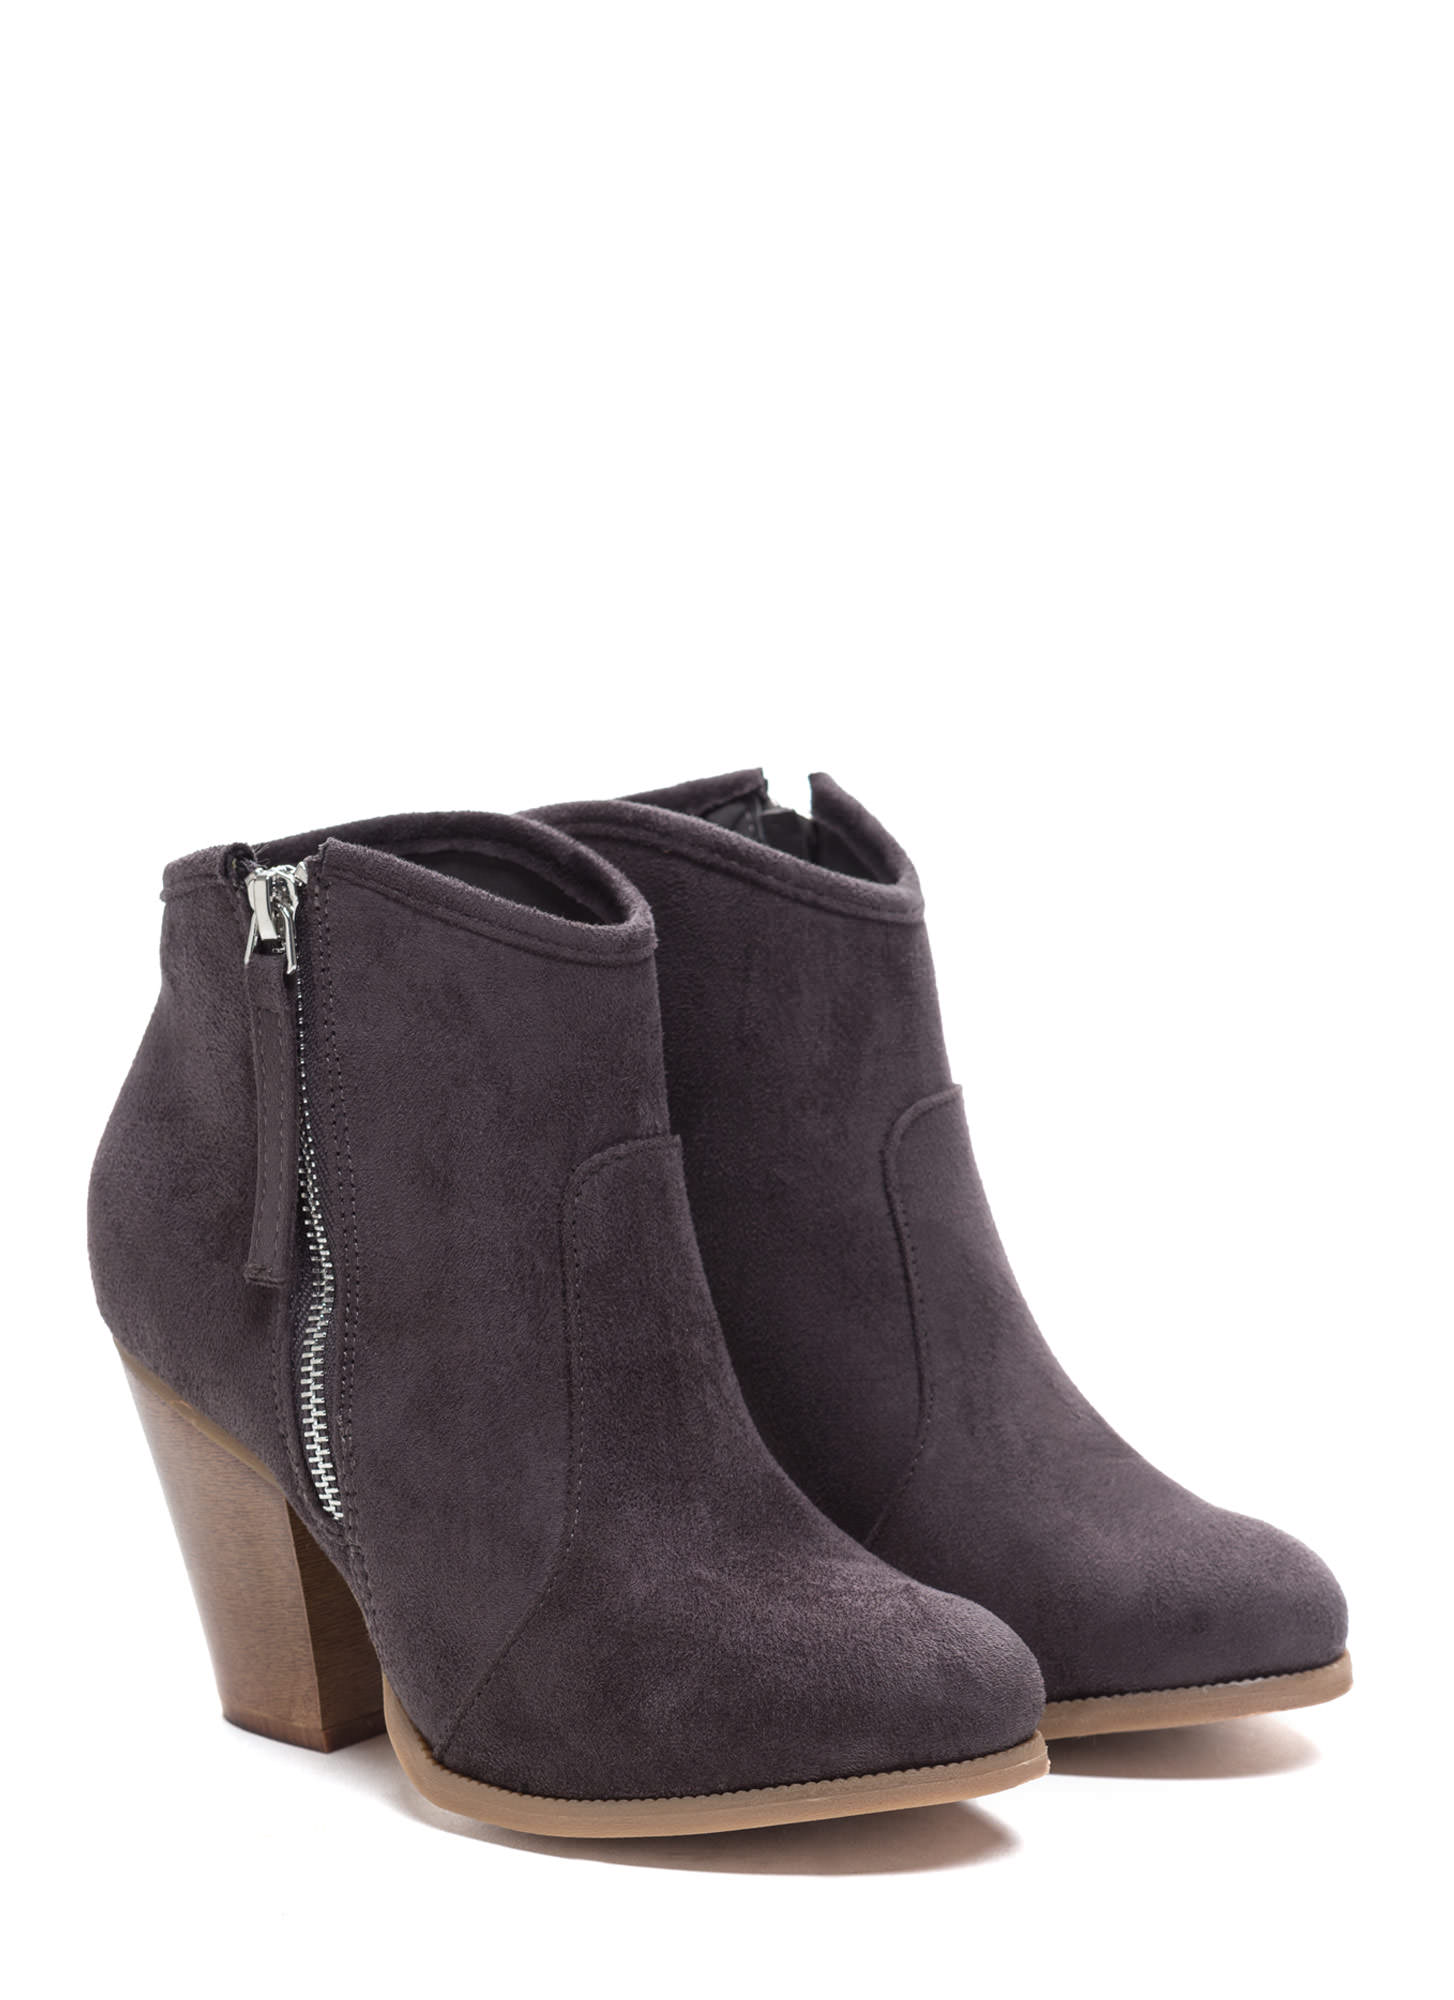 Zipped To The Top Chunky Booties CHARCOAL